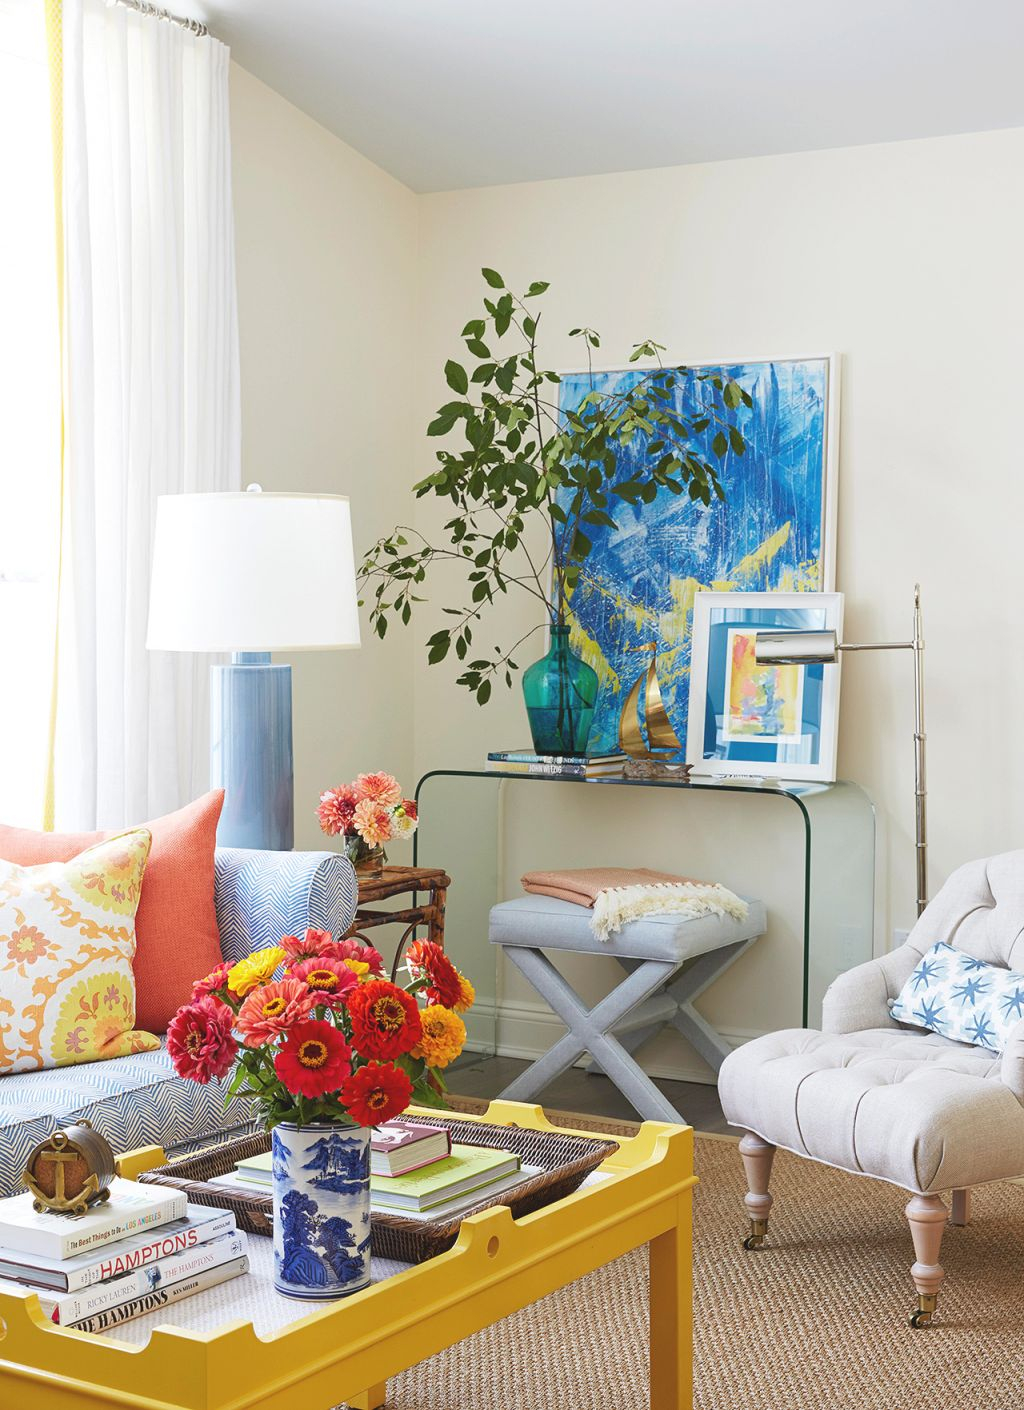 25 Cheery Ways To Use Yellow In Your Decor inside Unique Yellow Walls Living Room Interior Decor